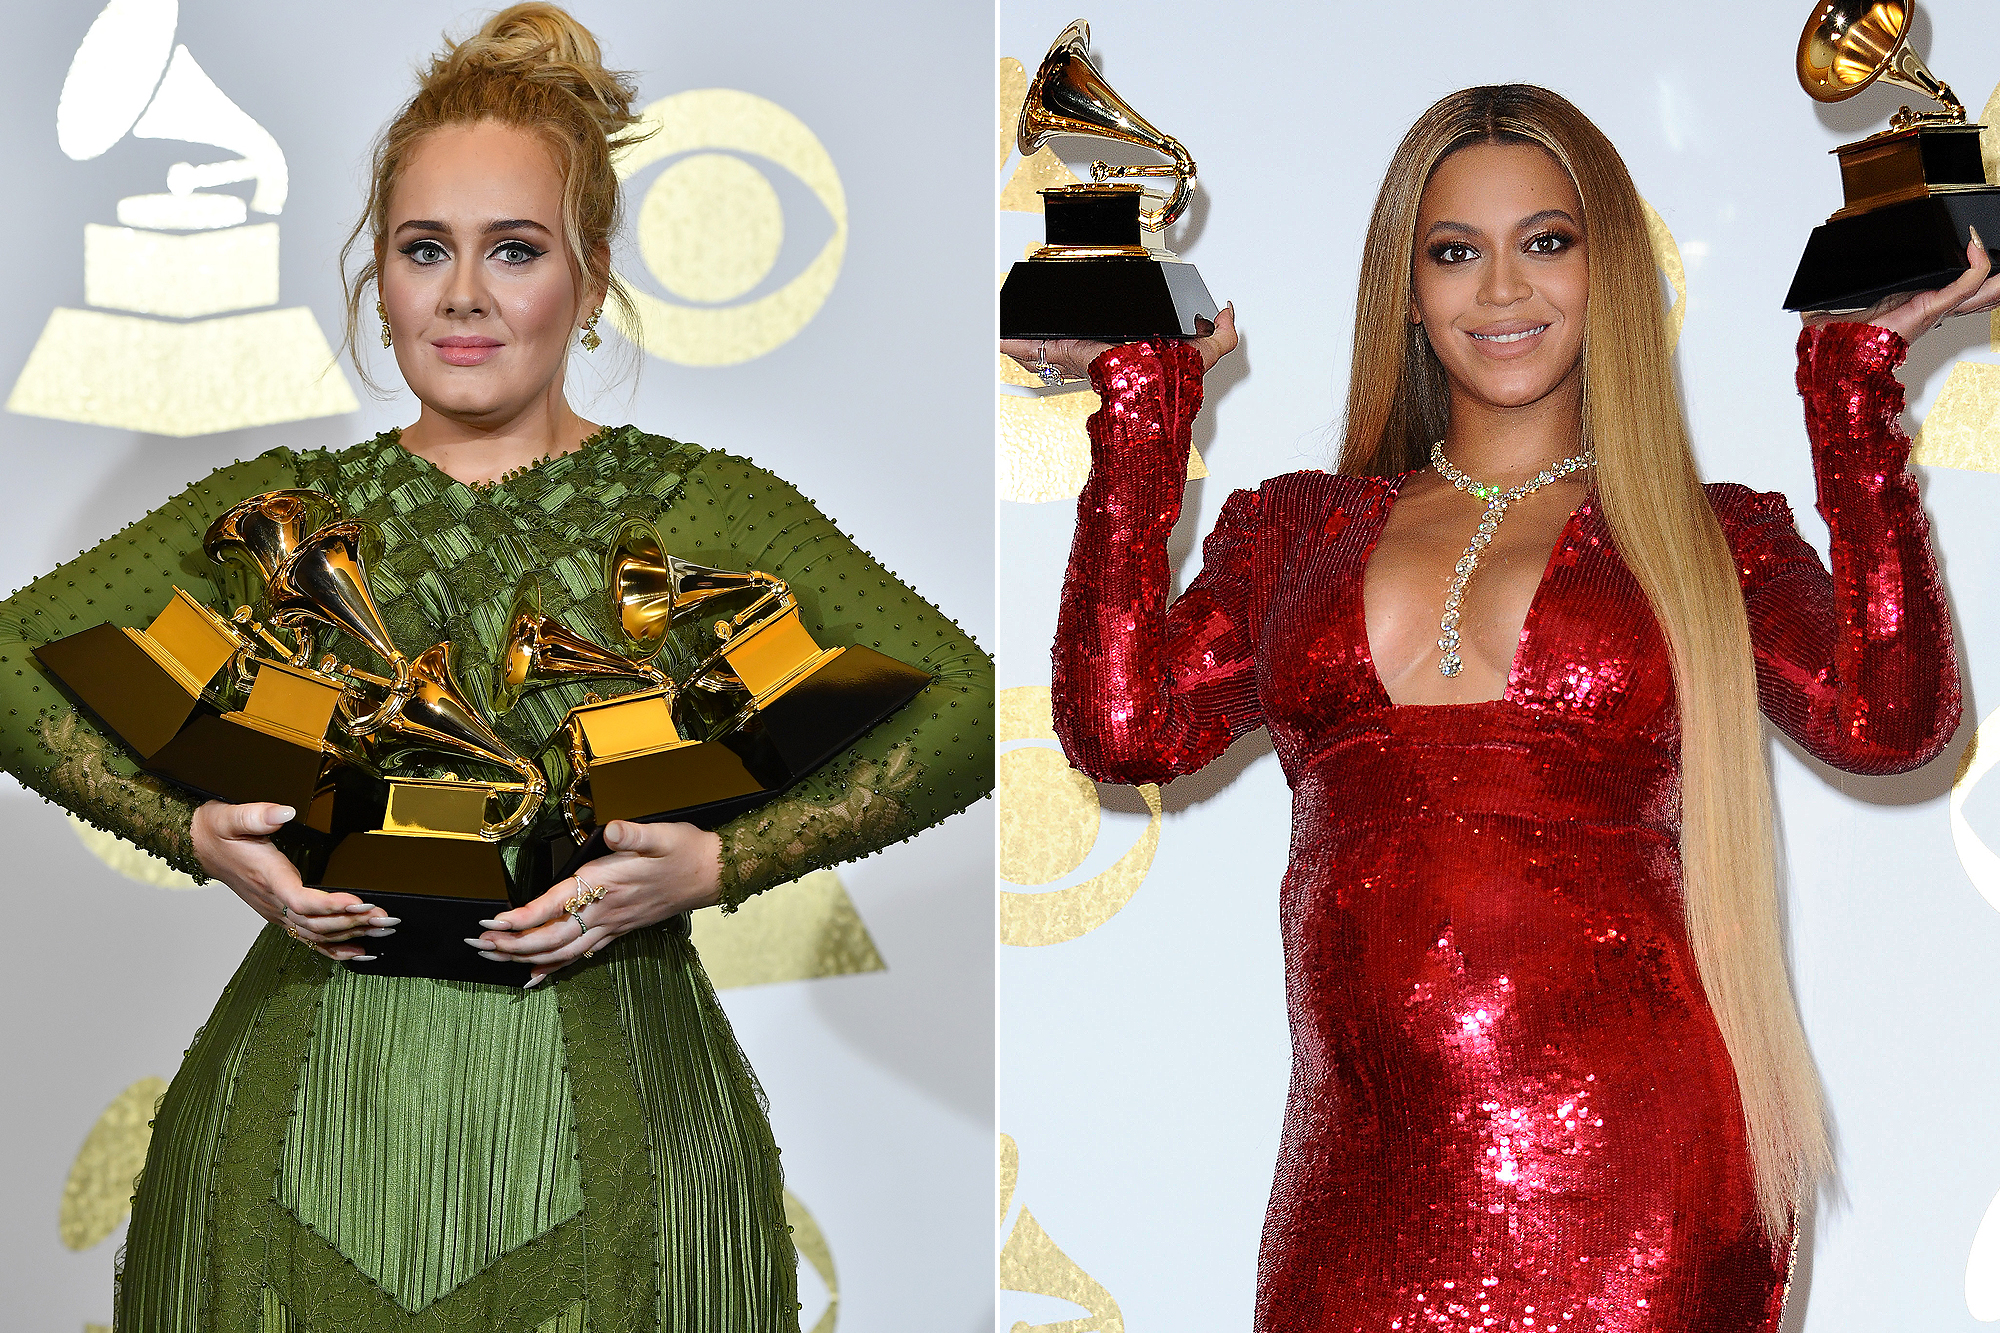 Adele, winner of Best Pop Vocal Album, Best Pop Solo Performance, Song of the Year, Record of the Year, and Album of the Year, poses in the press room during The 59th GRAMMY Awards at STAPLES Center on February 12, 2017 in Los Angeles, California/ Beyonce poses in the press room at the 59th GRAMMY Awards at Staples Center on February 12, 2017 in Los Angeles, California.